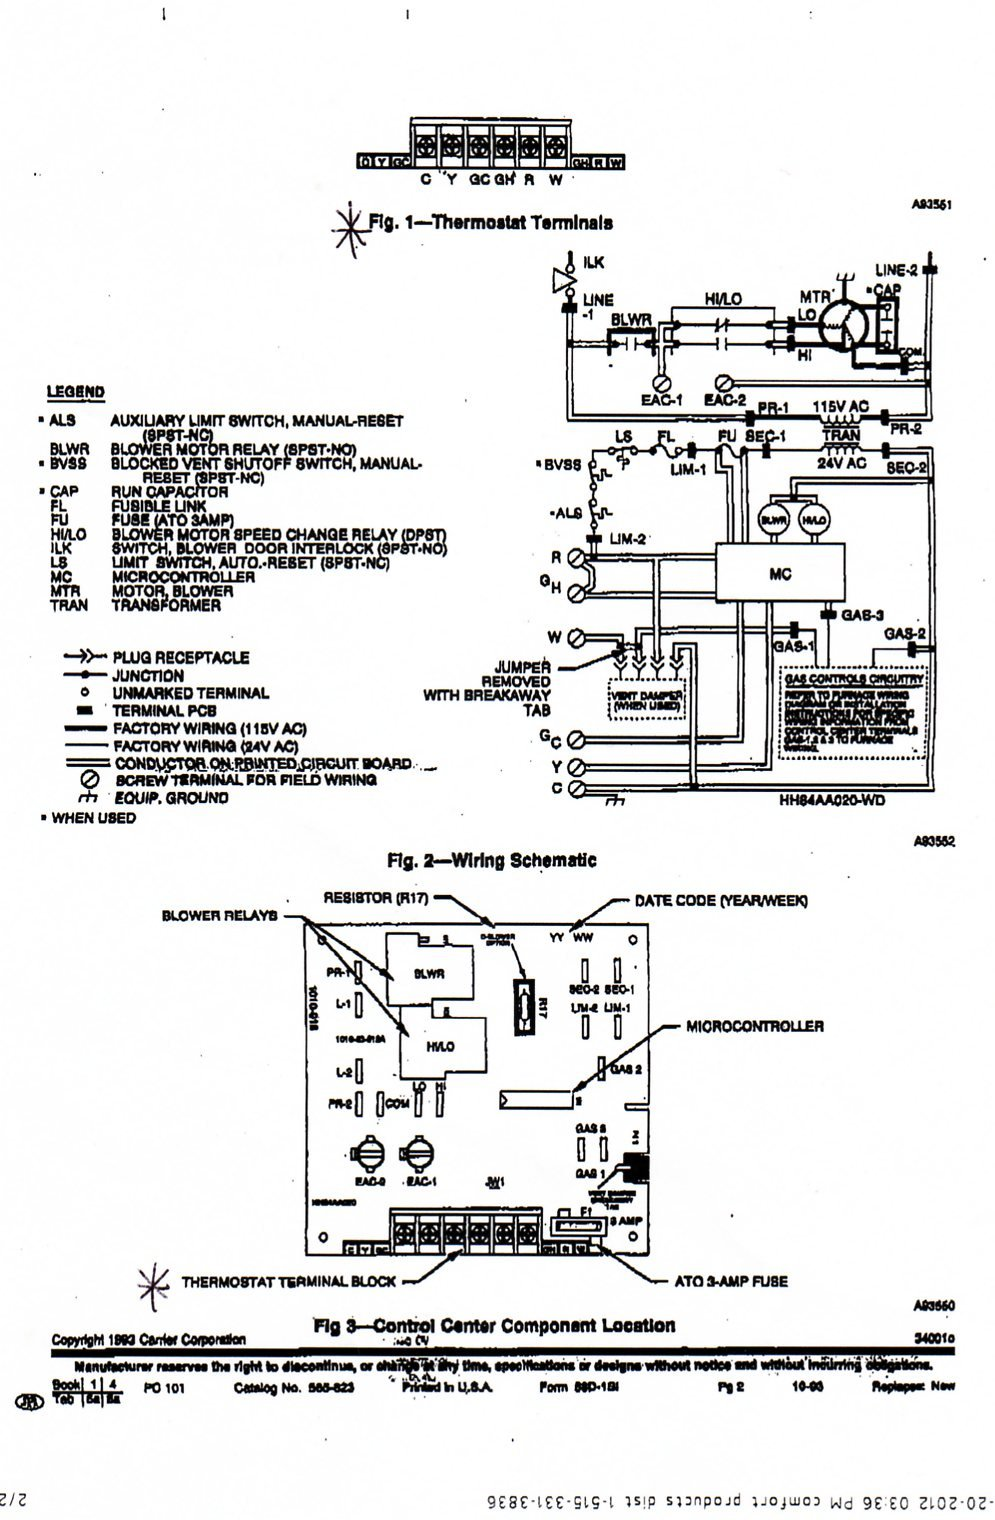 payne wiring diagrams get free image about wiring diagram